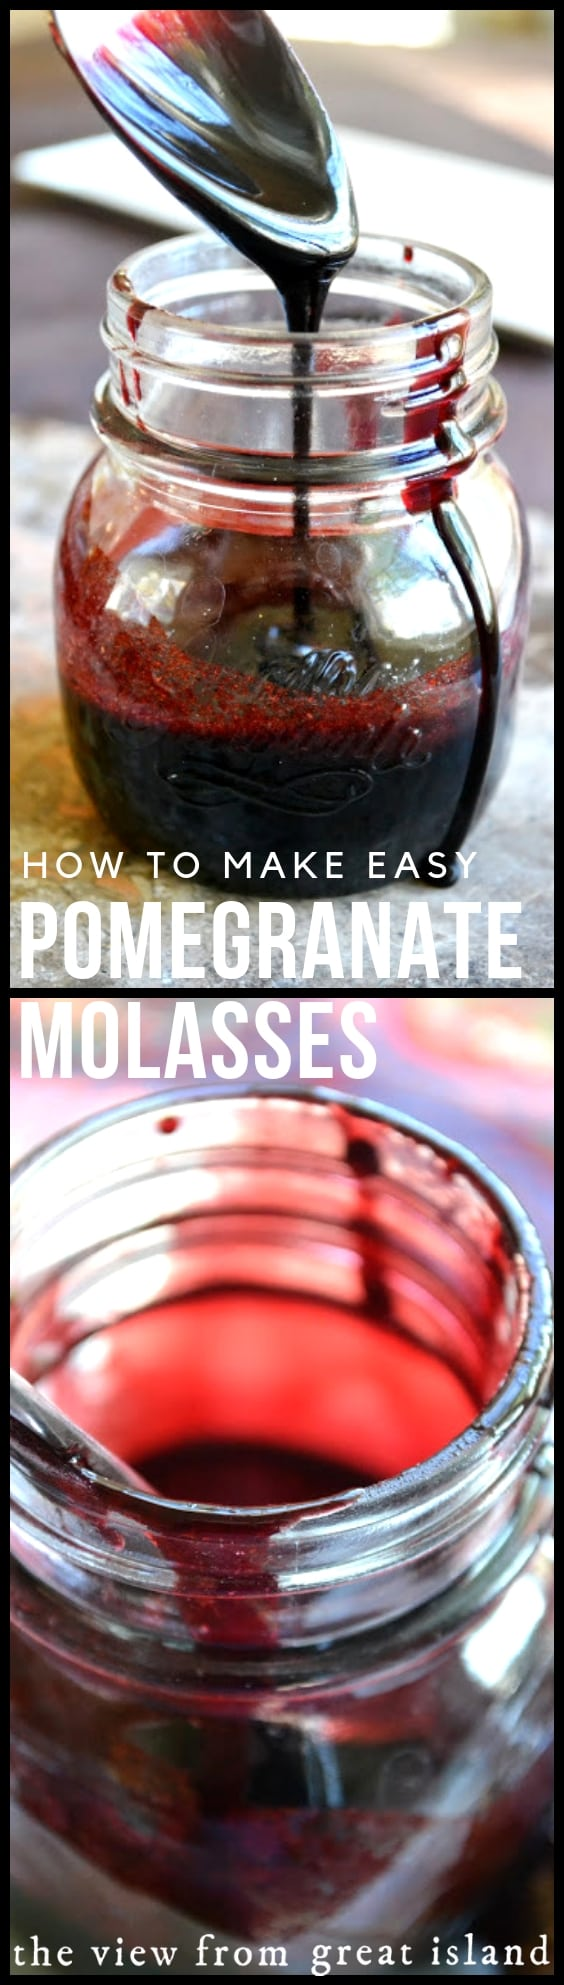 How to Make Pomegranate Molasses ~ an easy method for making this authentic classic Middle Eastern condiment right in your ownkitchenwith pomegranate juice! #easy #recipe #diy #authentic #pomegranate #juice #middleeastern #syrup #condiment #sauce #homemade